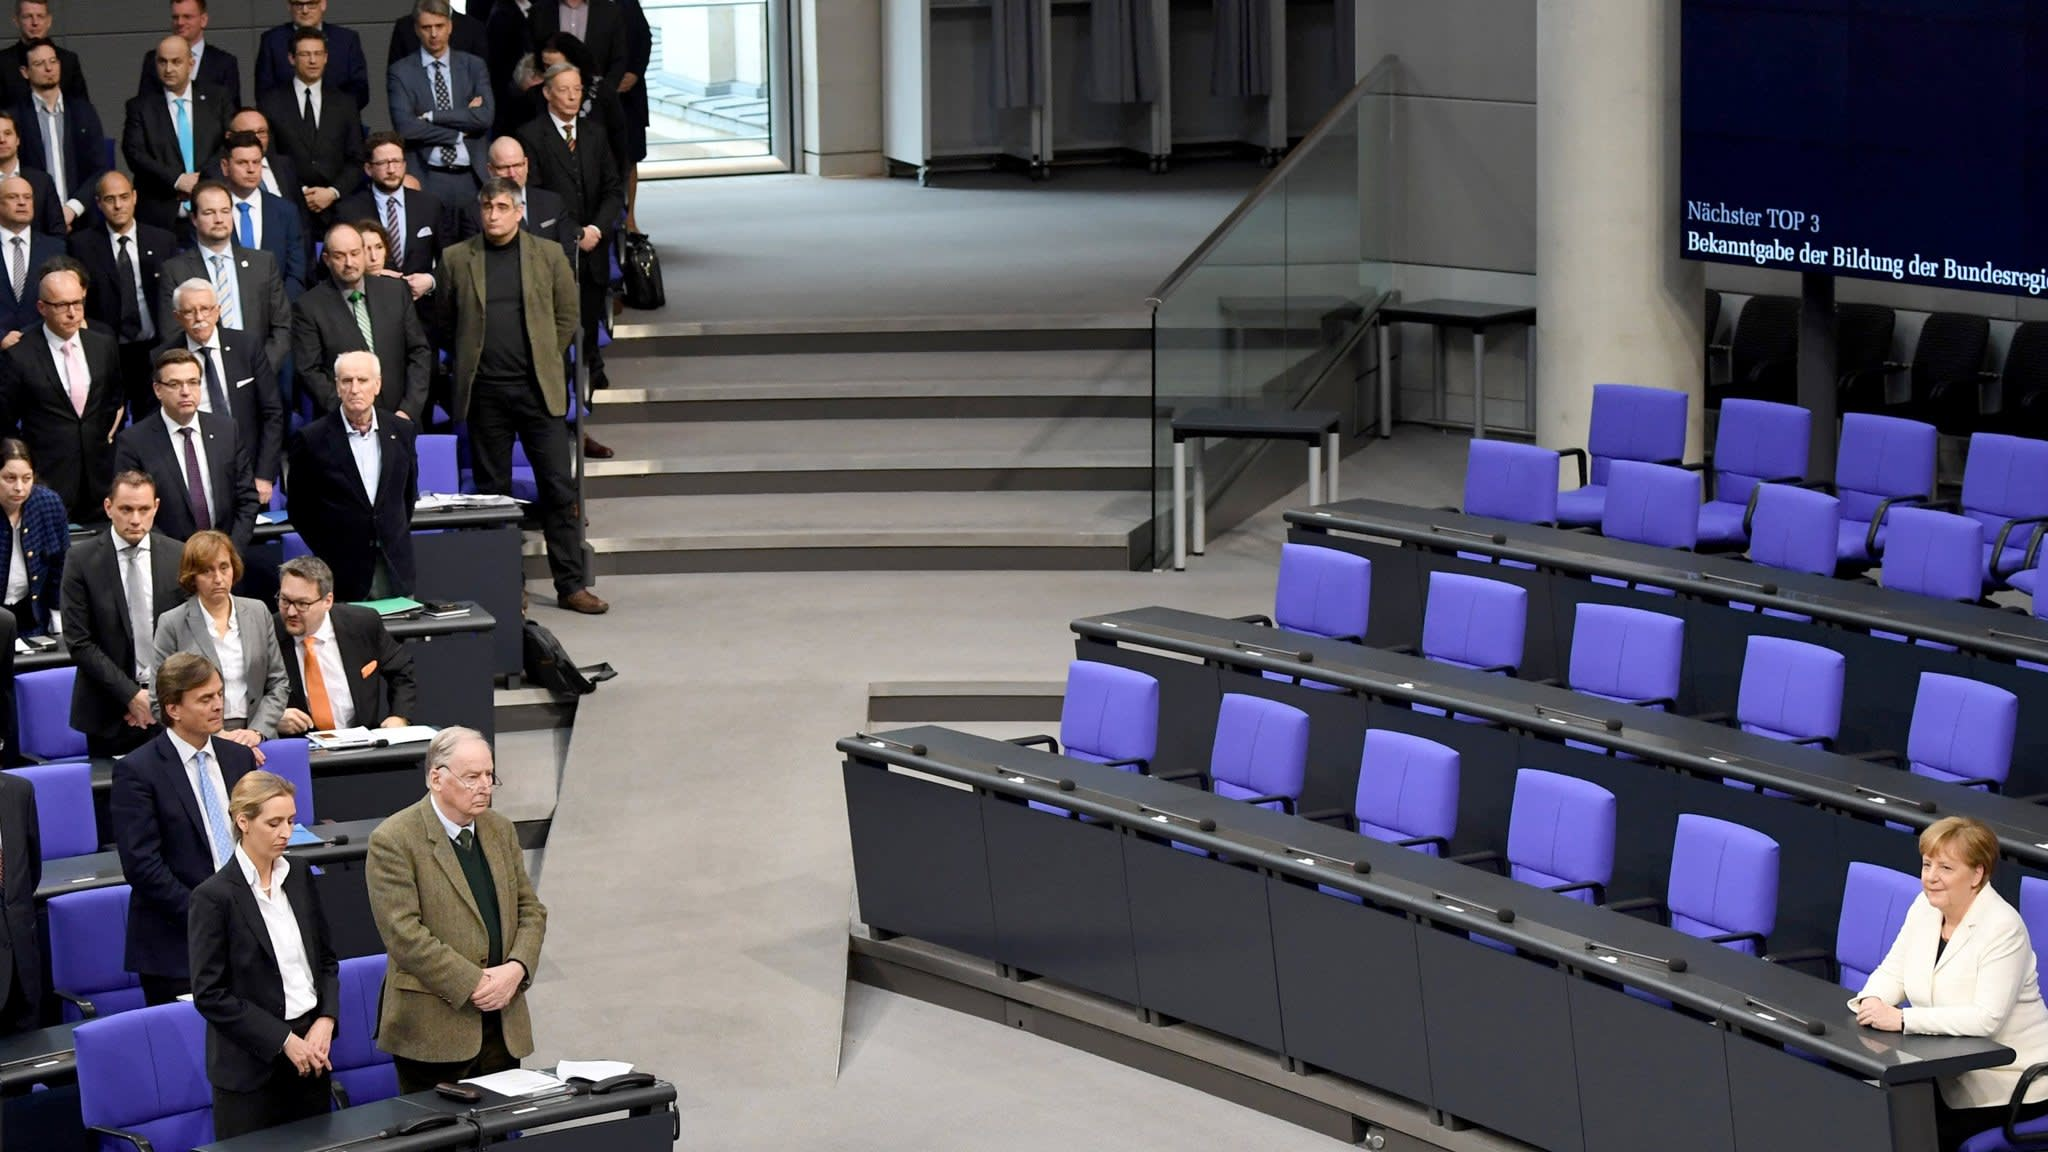 AfD bloc turns up the heat in Germany's Bundestag